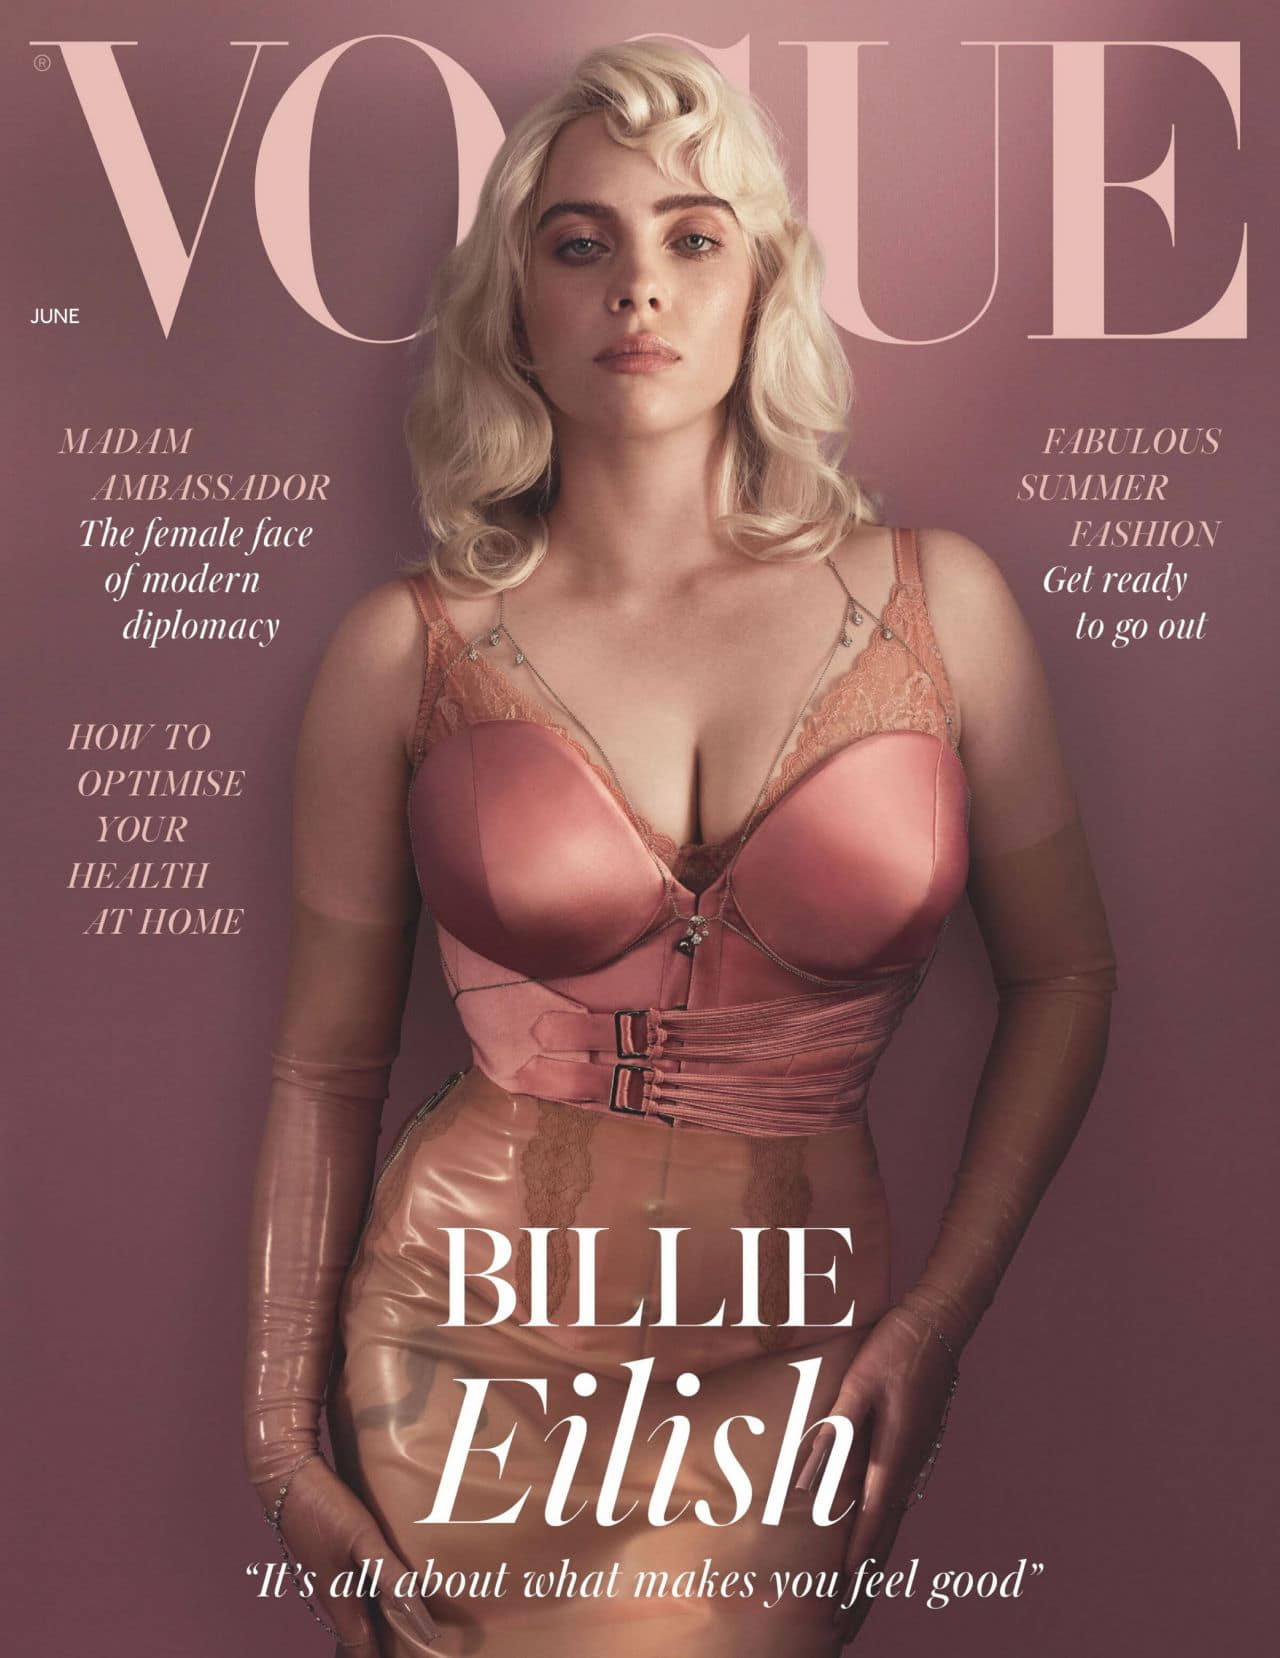 Billie Eilish on the Cover of Vogue UK June 2021 Issue